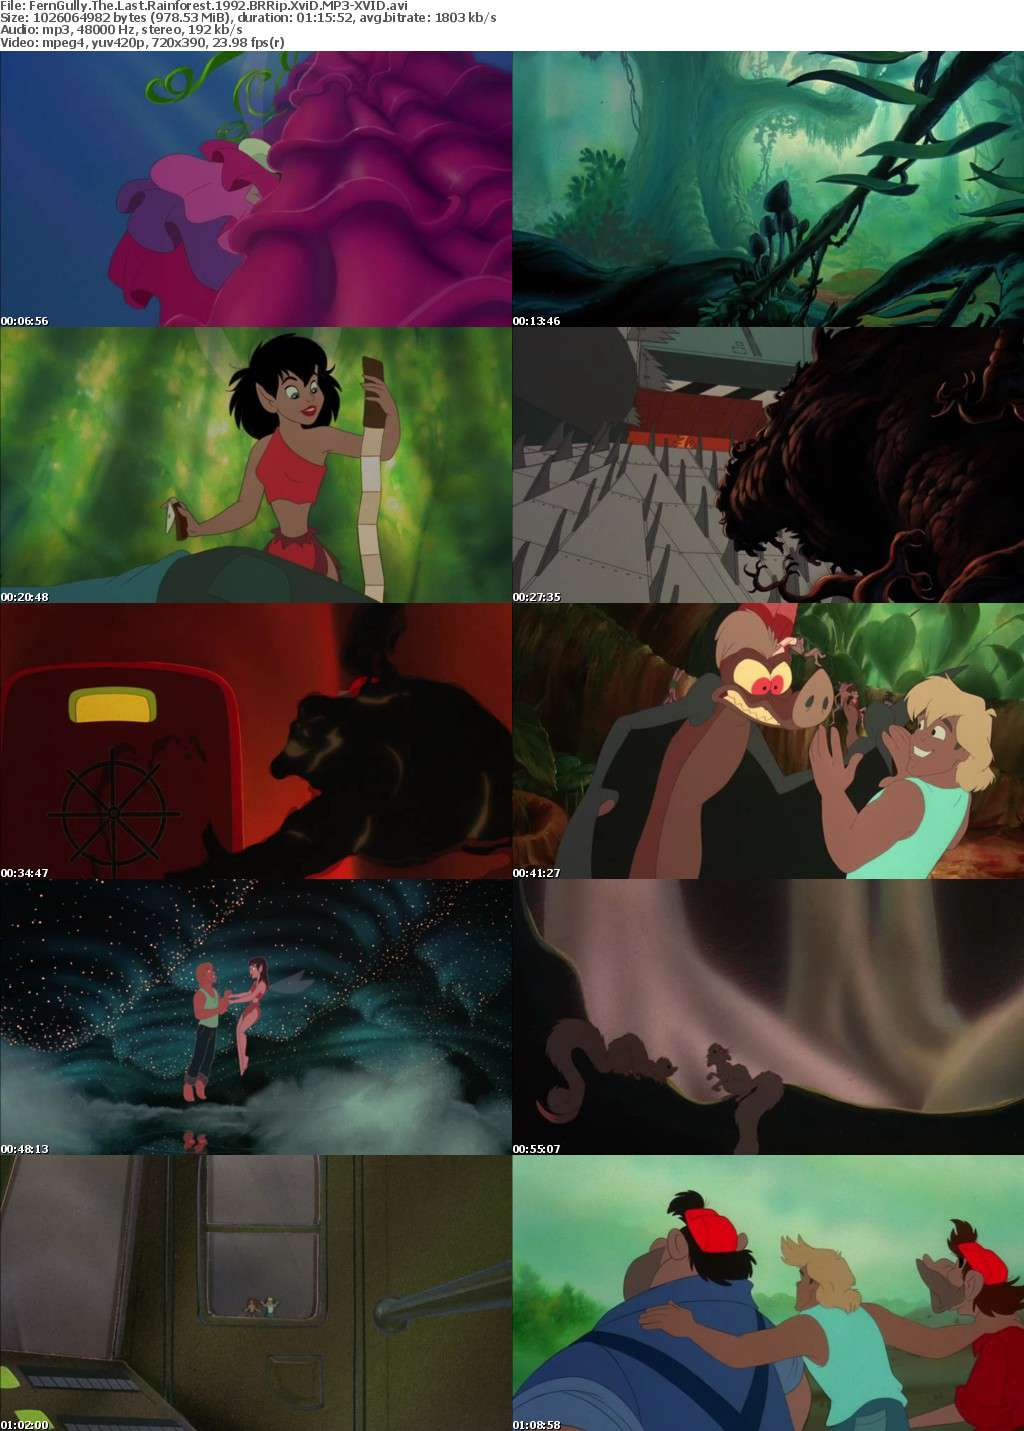 FernGully The Last Rainforest 1992 BRRip XviD MP3-XVID